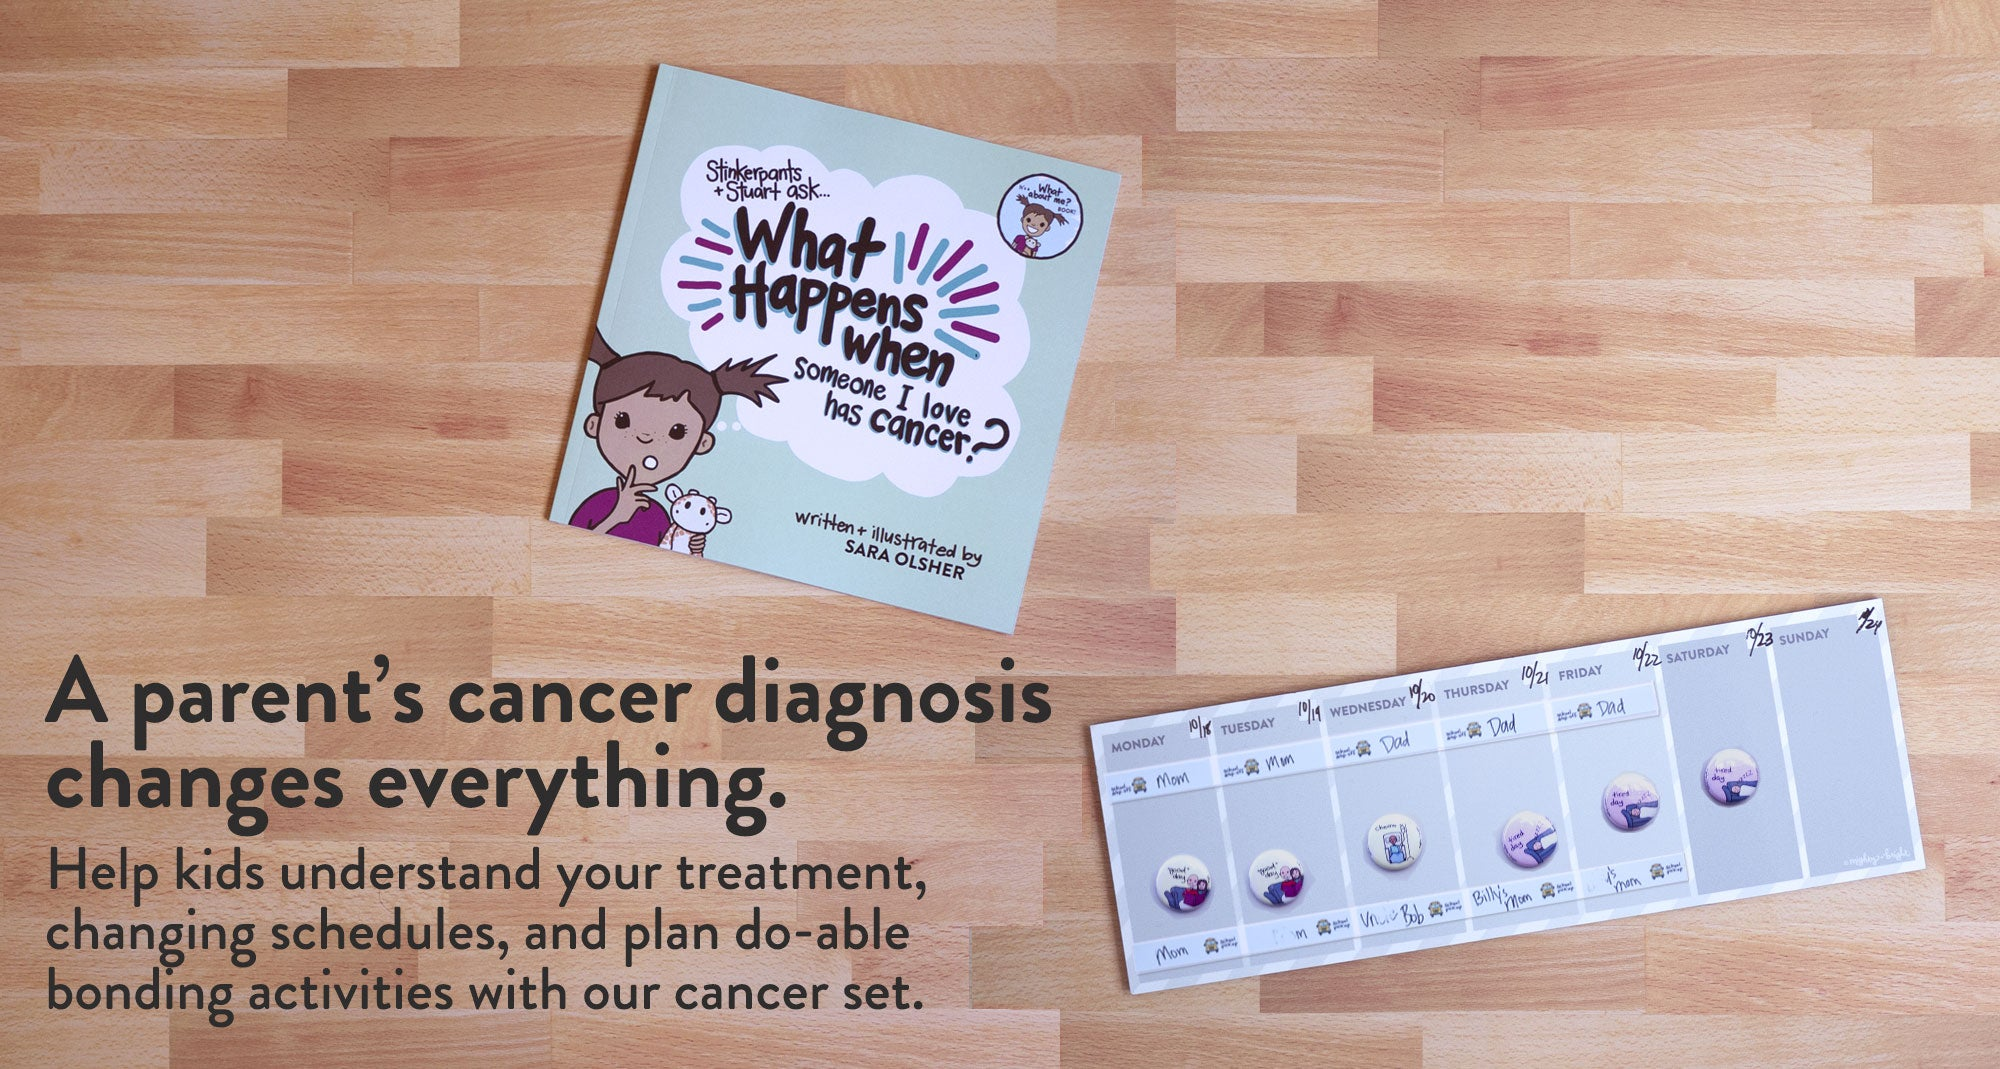 Explain a parents' cancer diagnosis changes everything. Help kids cope.